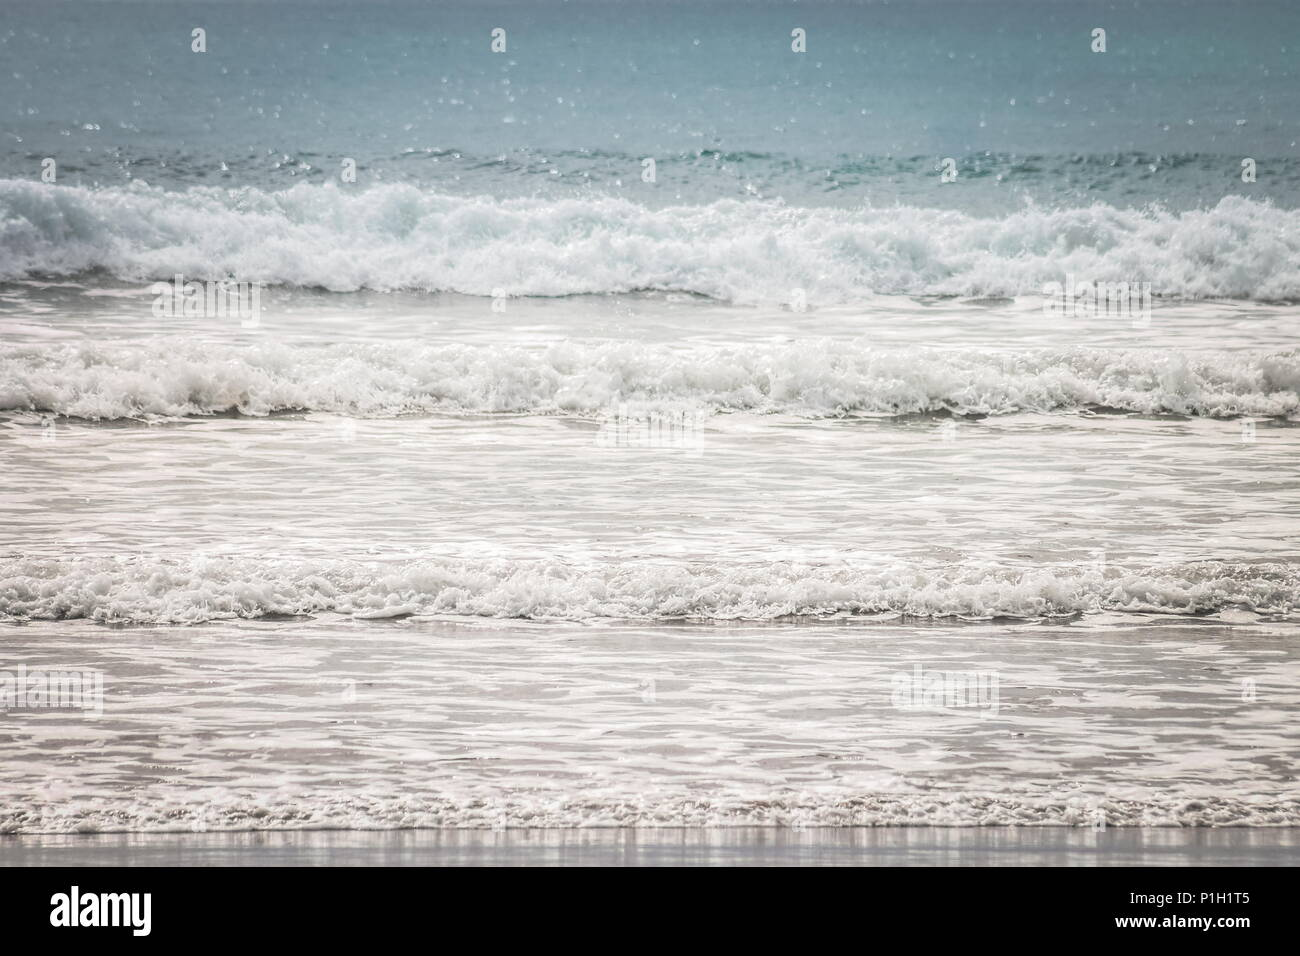 Background image of Gentle waves rolling on to shore - Stock Image